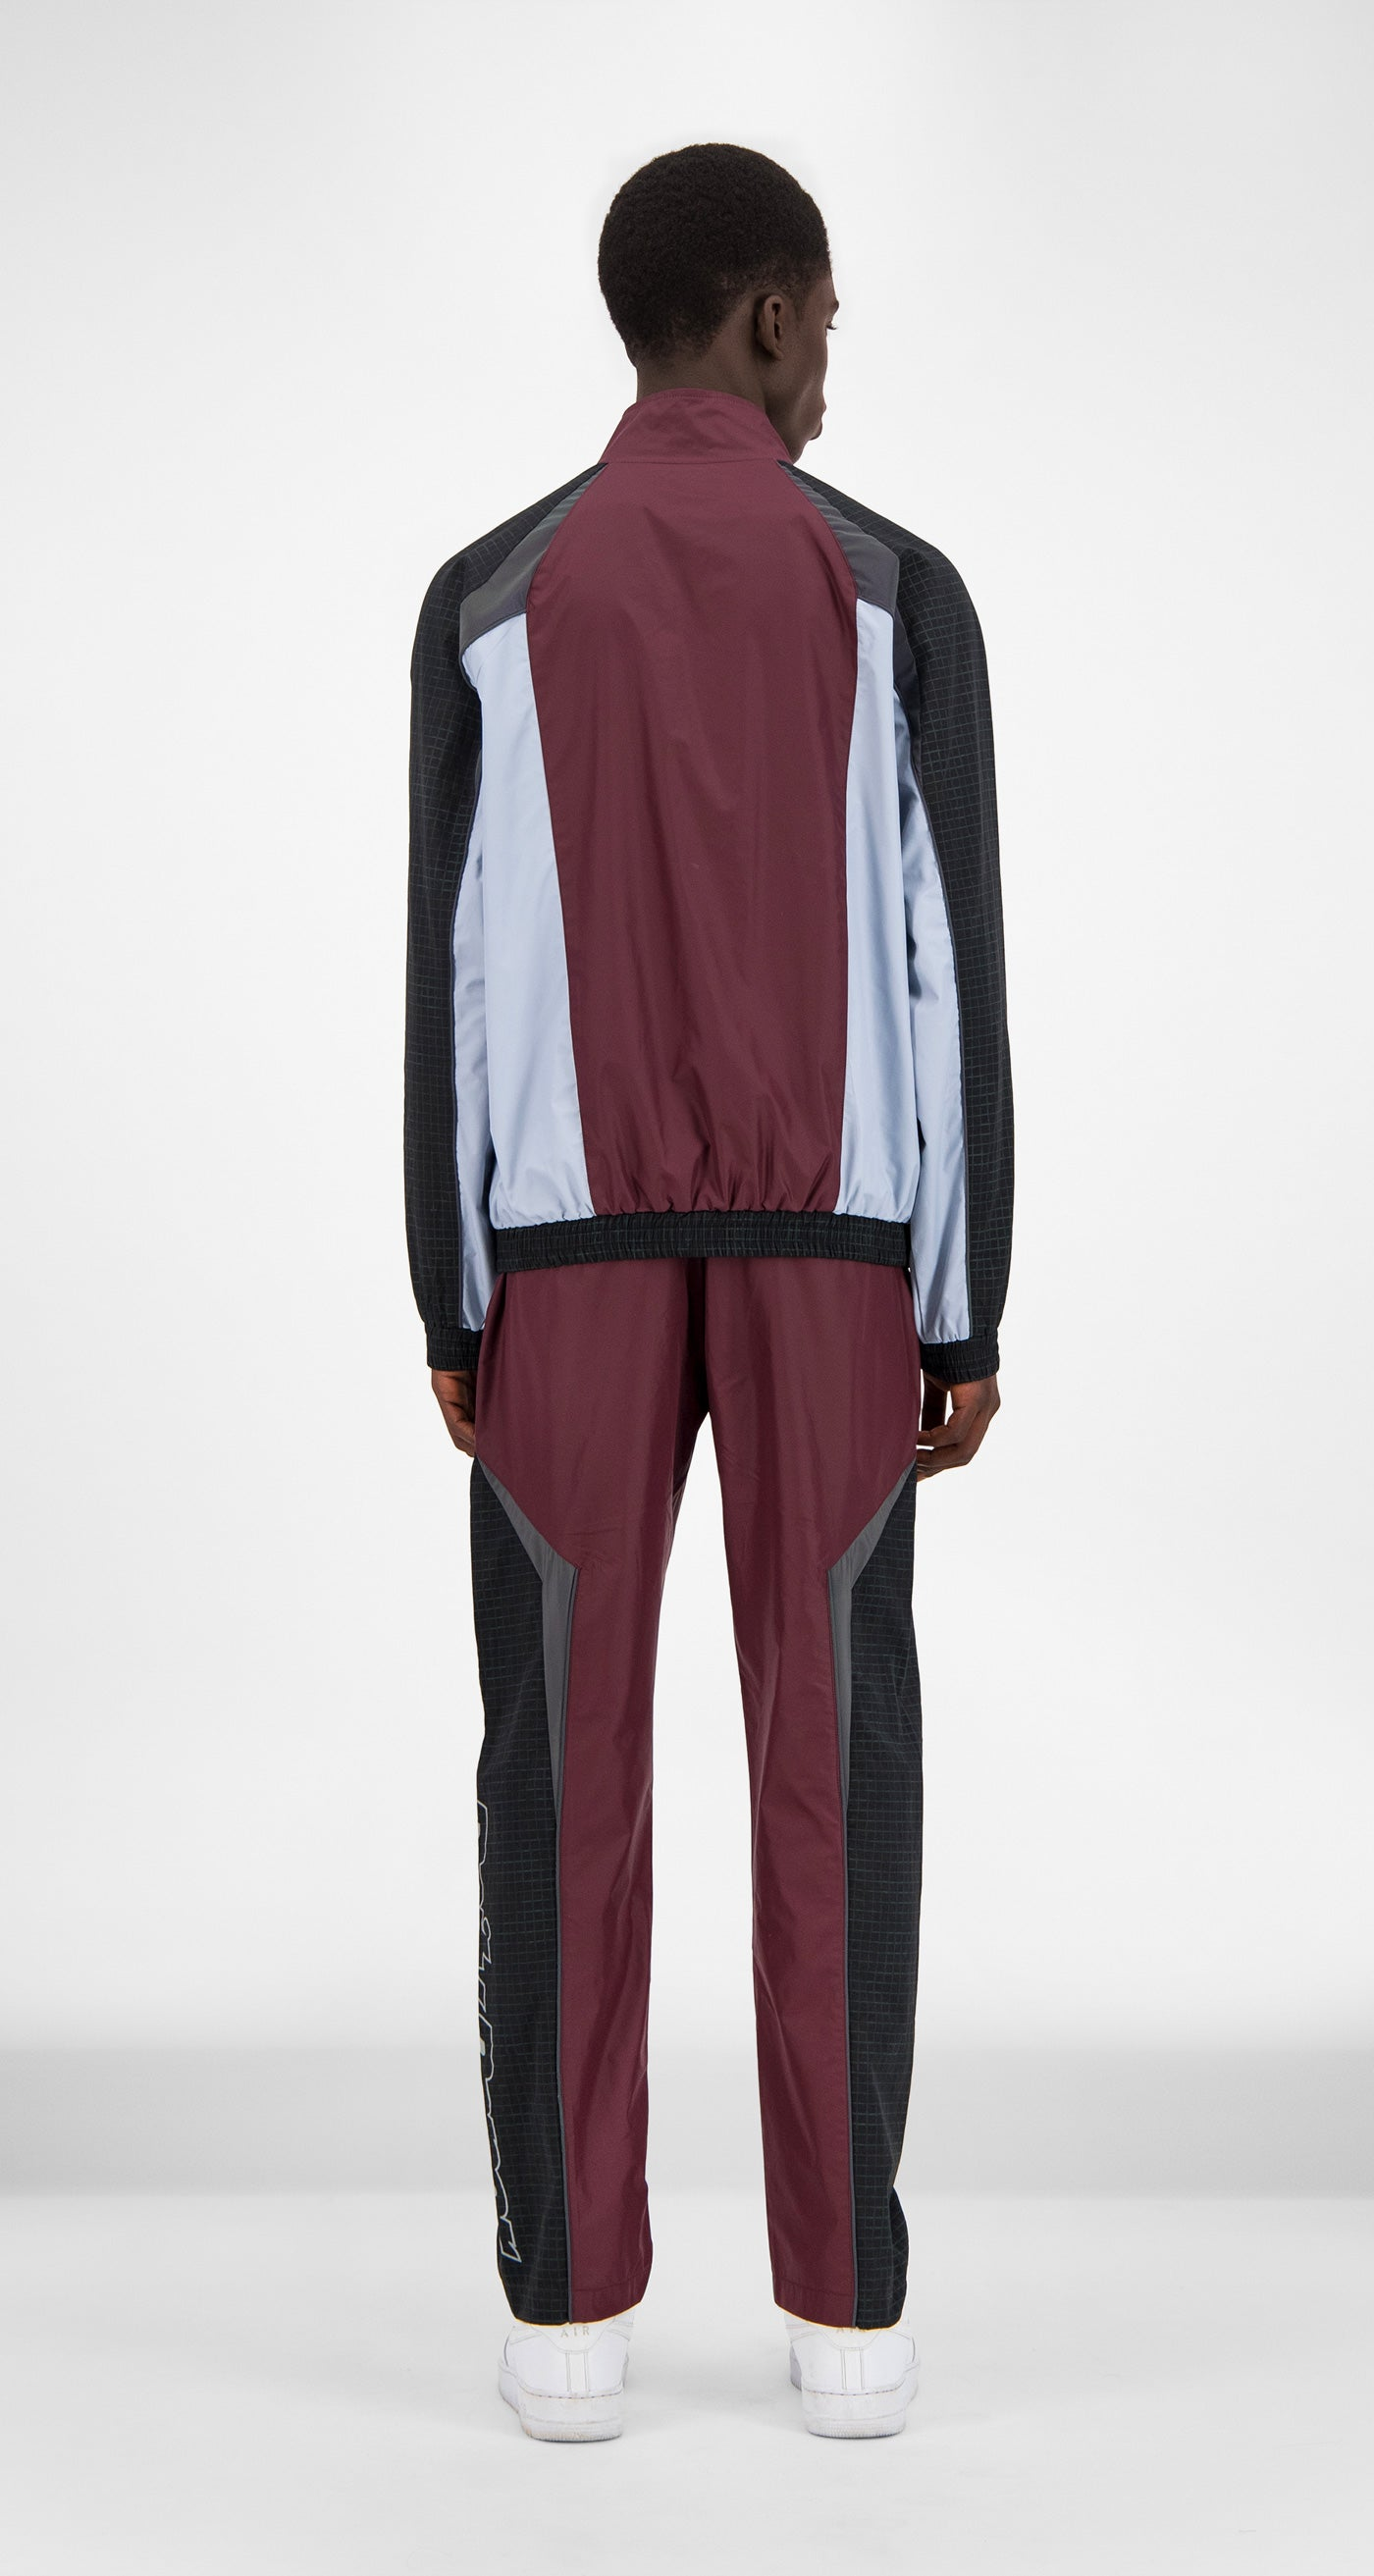 Burgundy Reflective Gasah Jacket - Men Rear